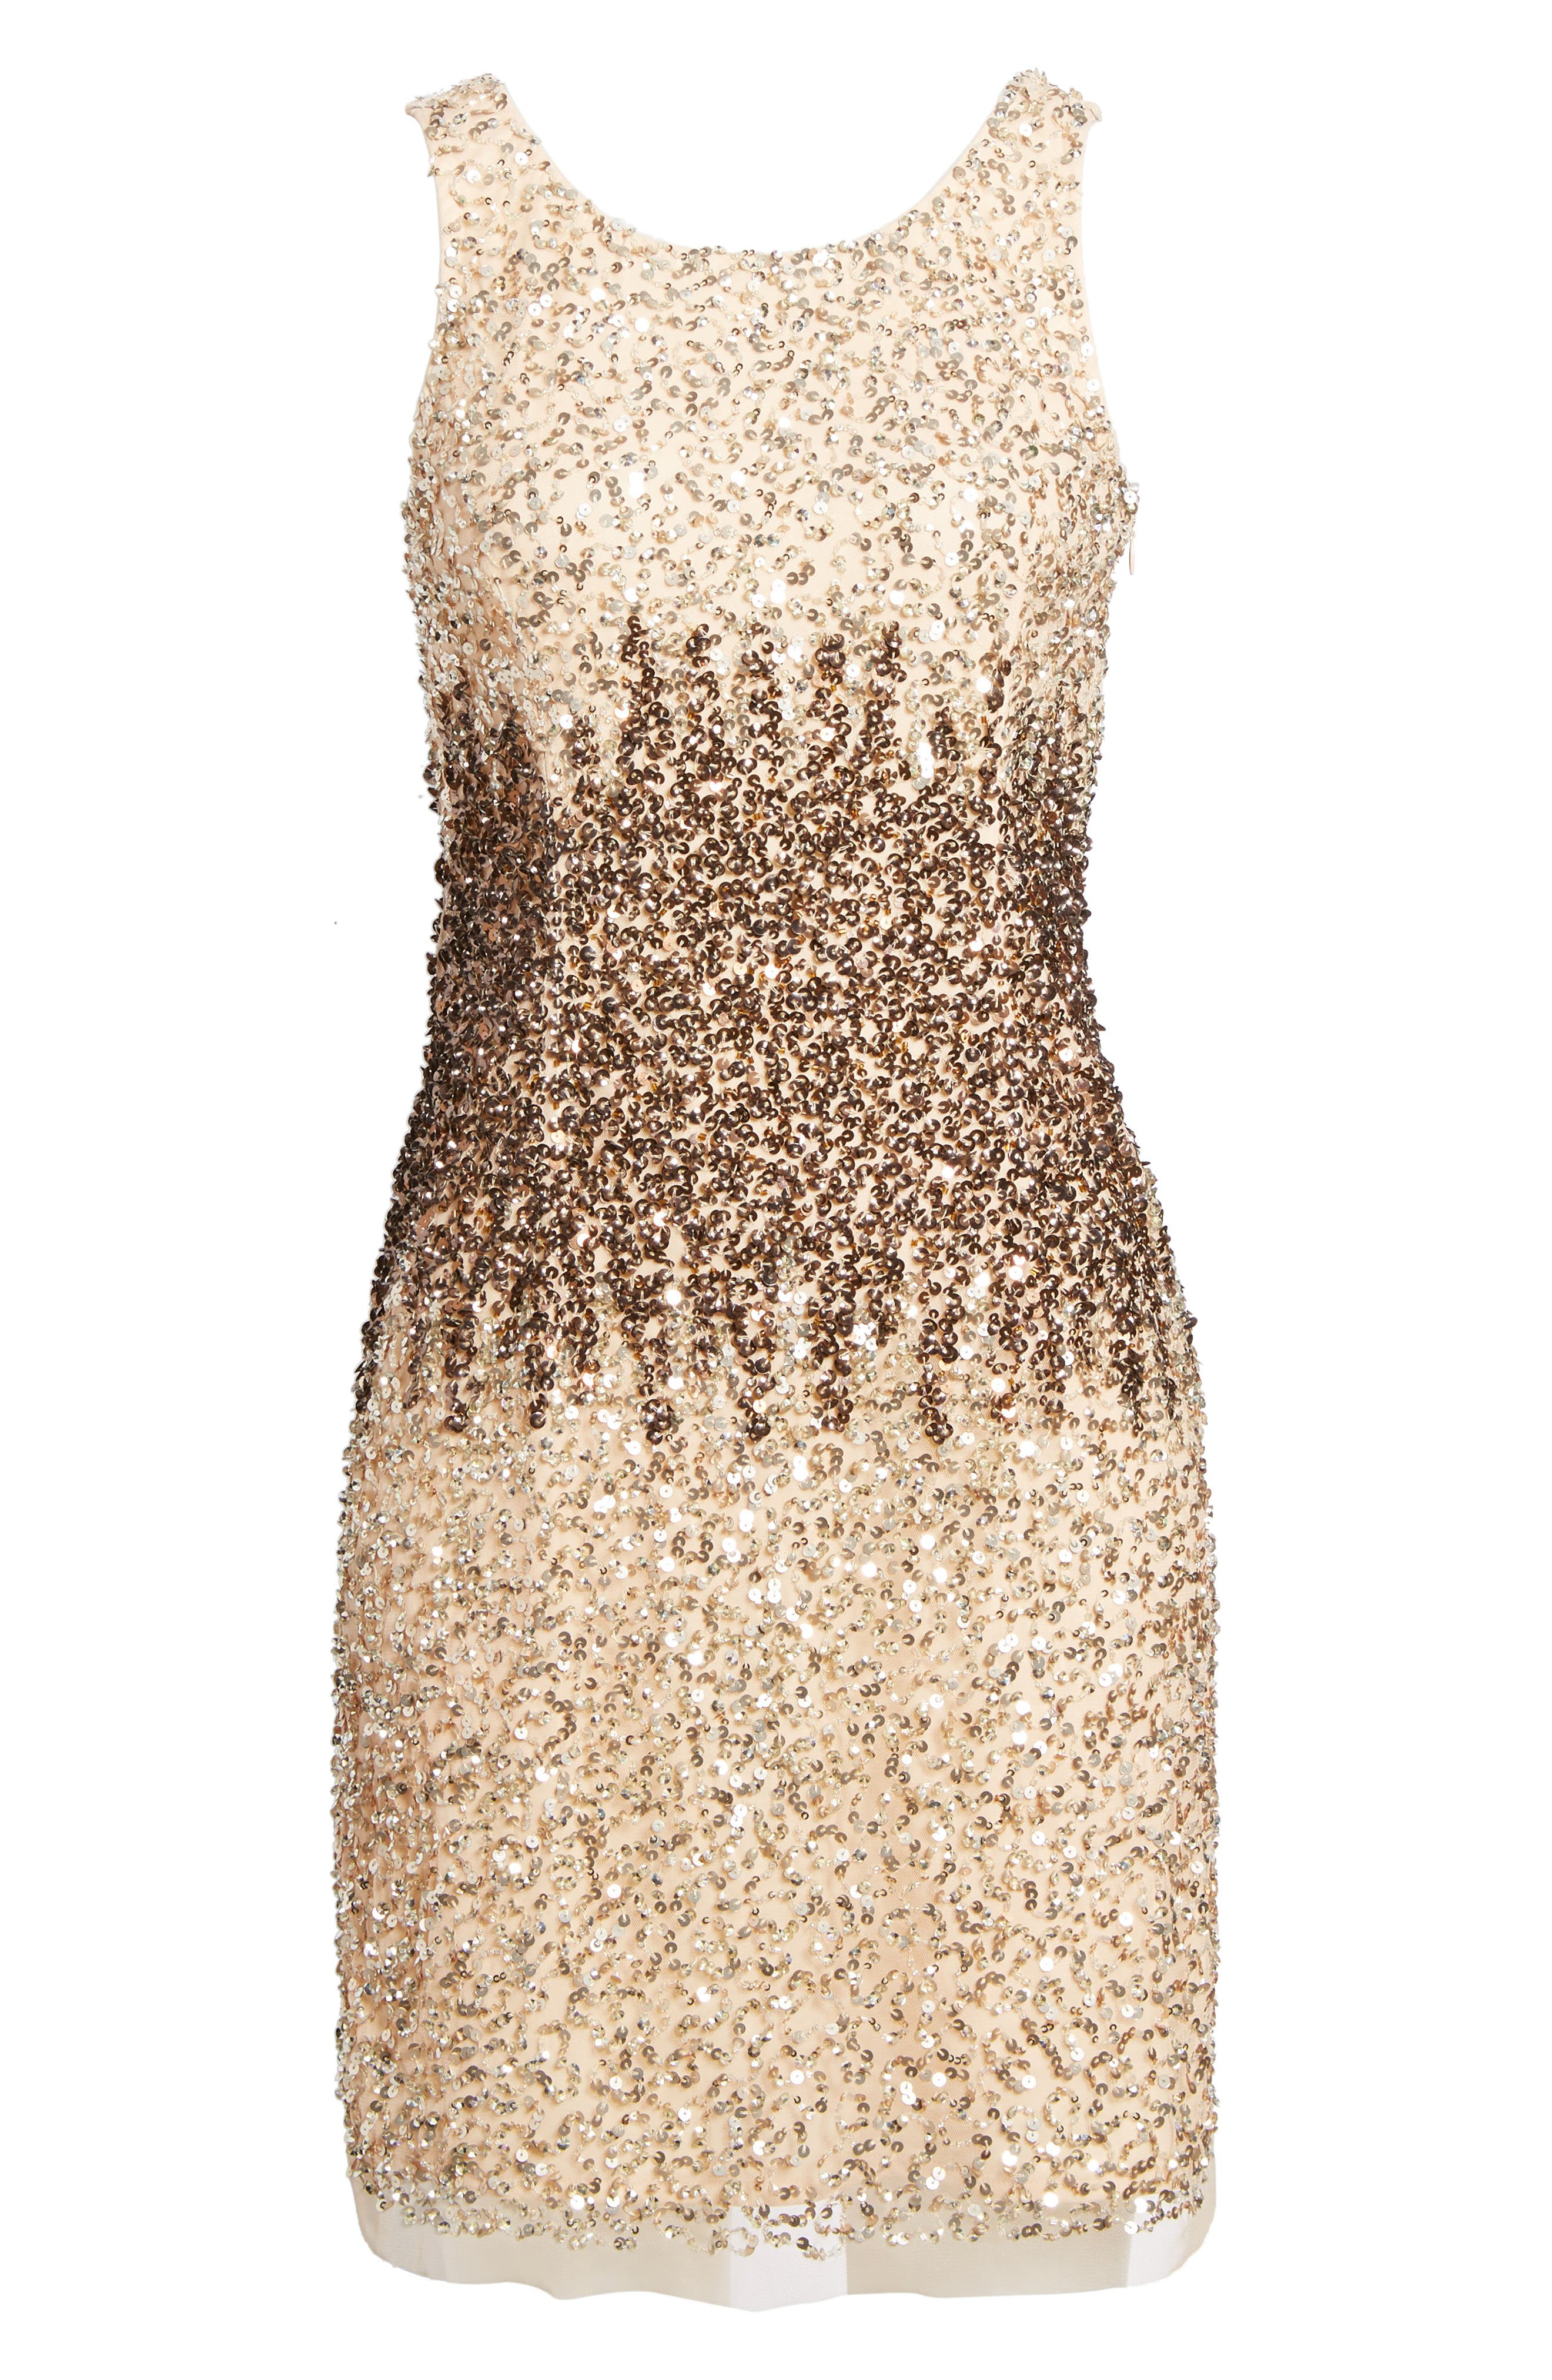 Sequins and Champagne Dress,                             Alternate thumbnail 6, color,                             280